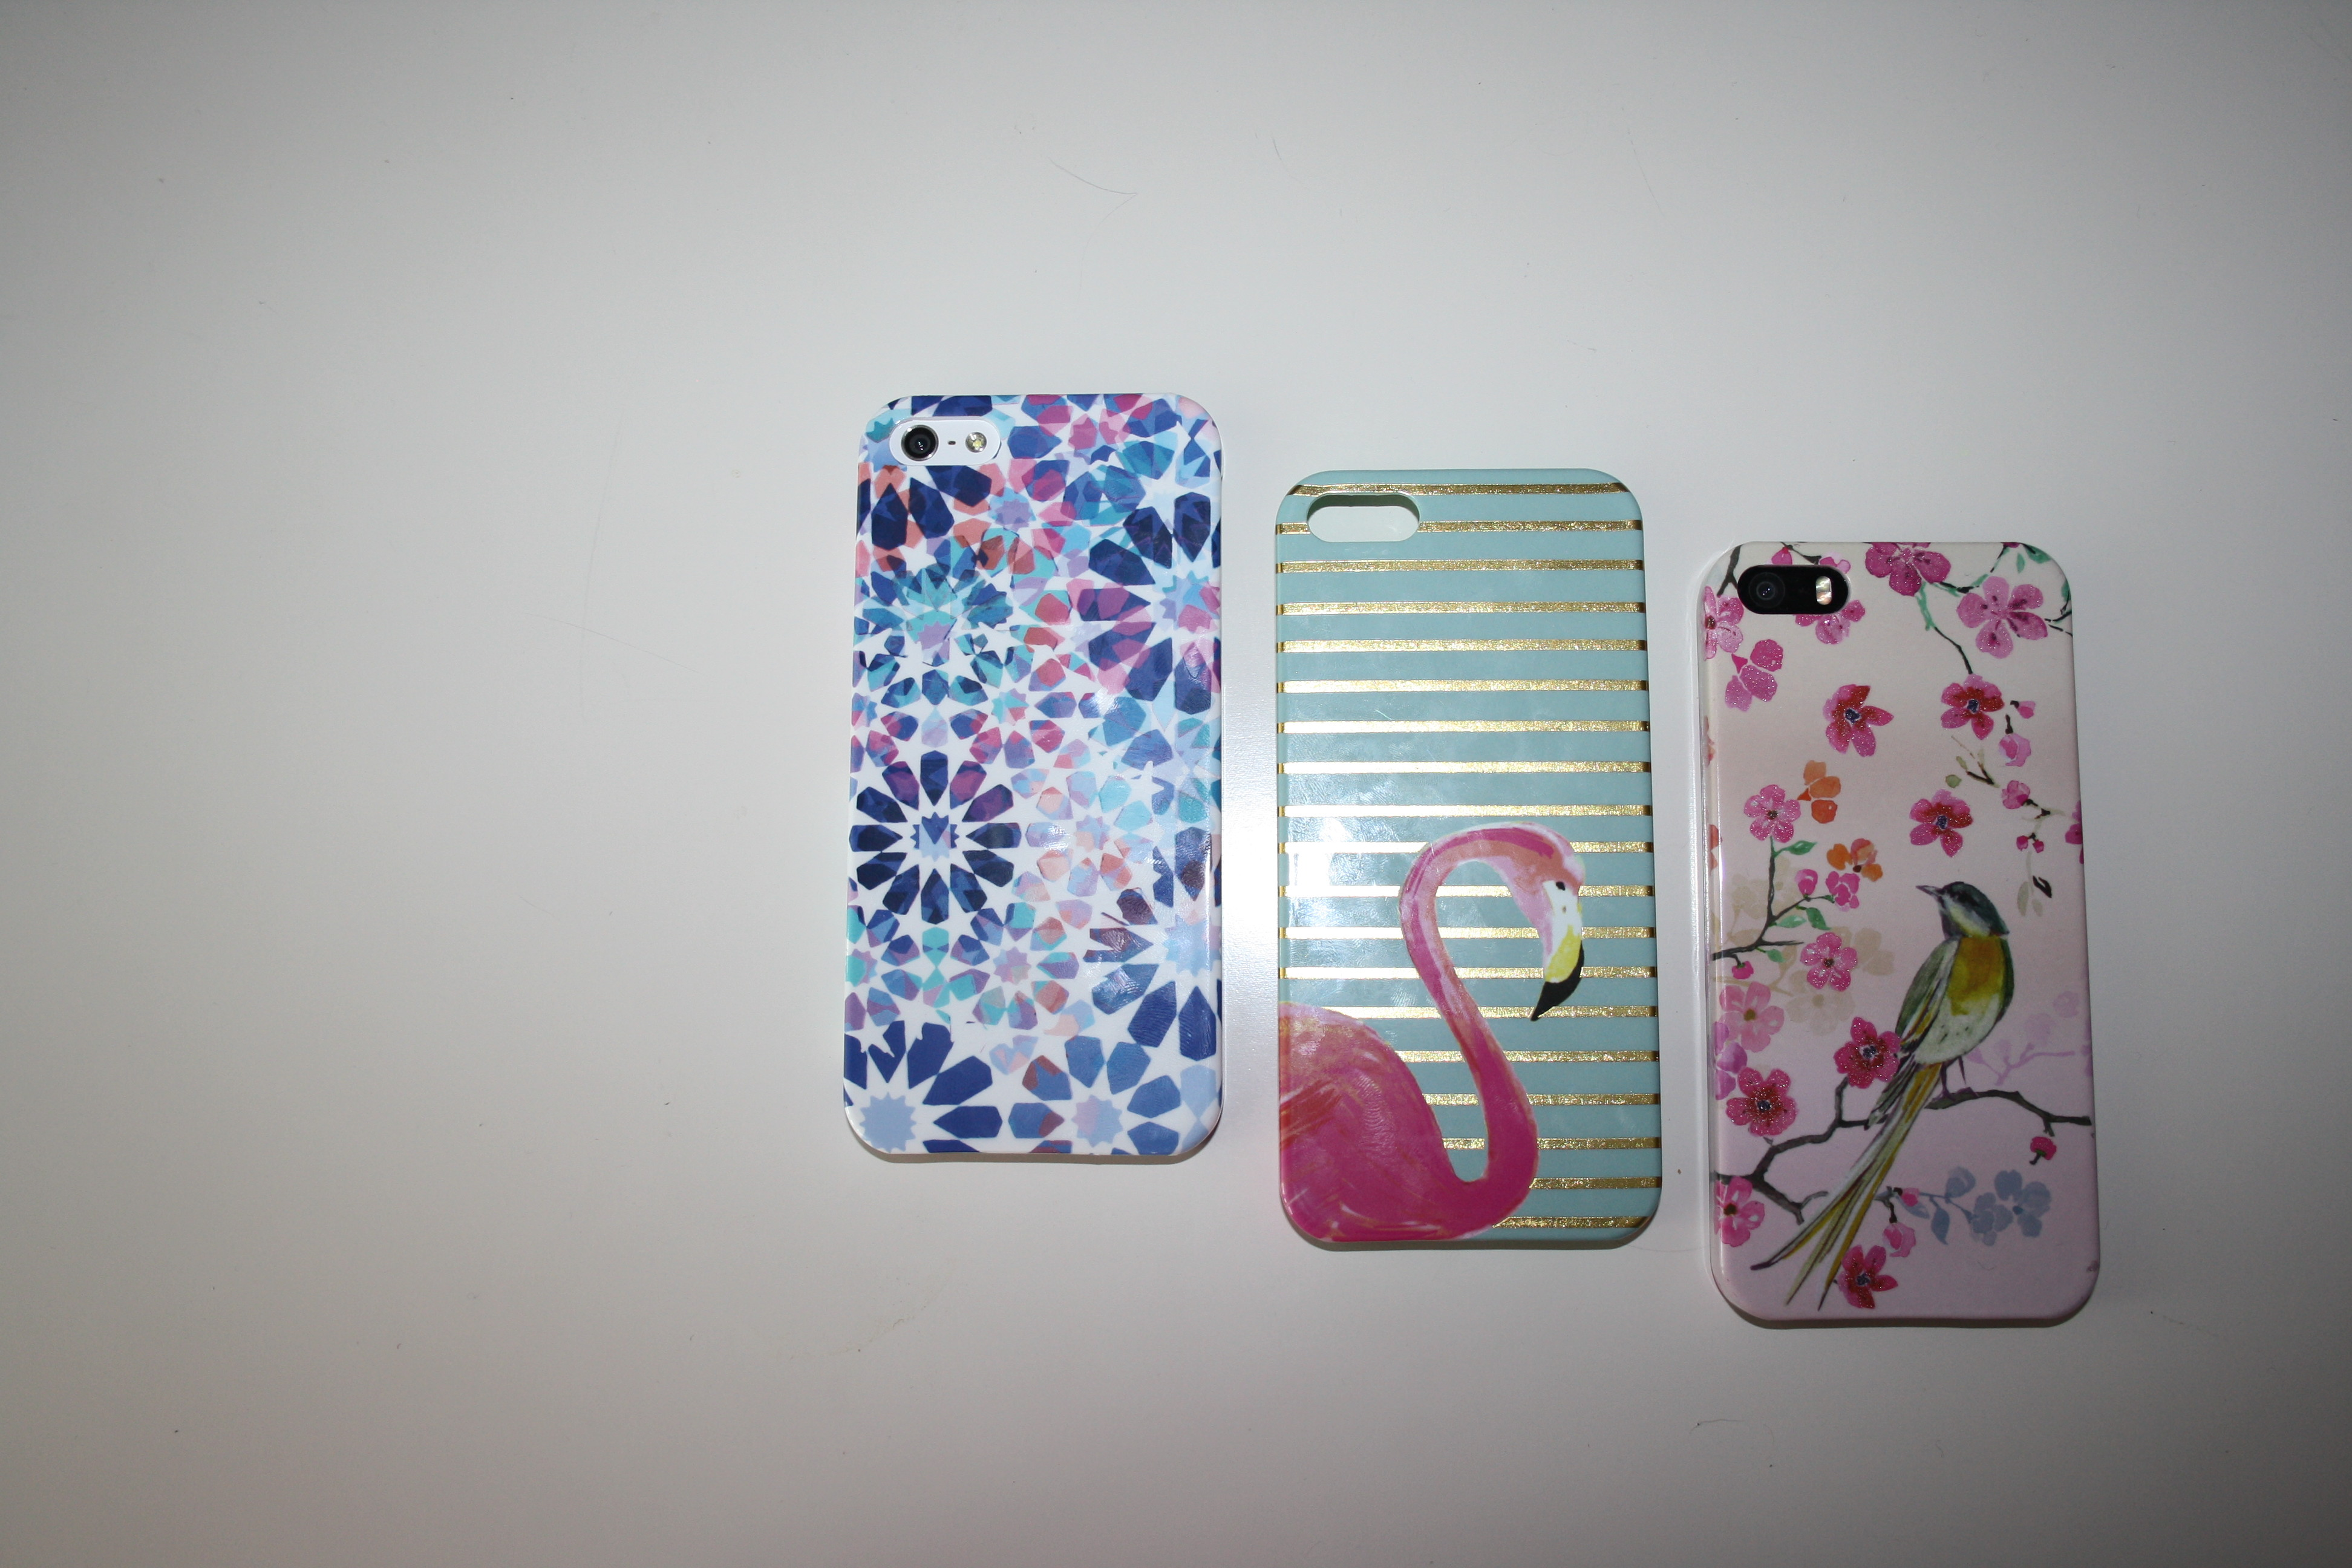 Capas iPhone Accessorize.JPG